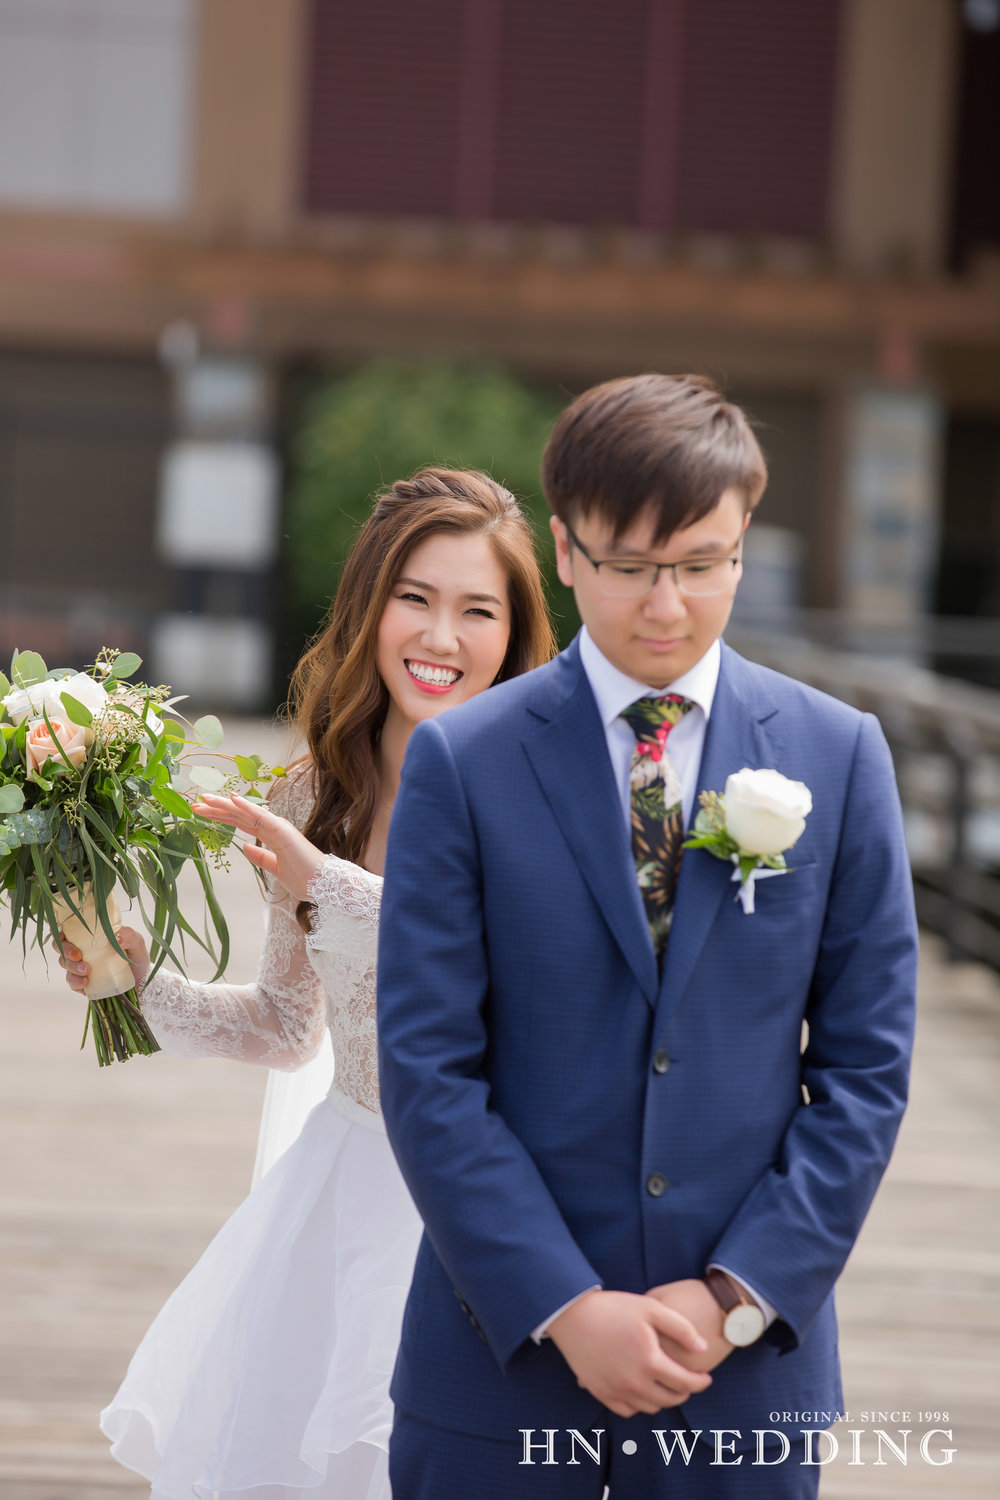 hnwedding20170709weddingday--11.jpg